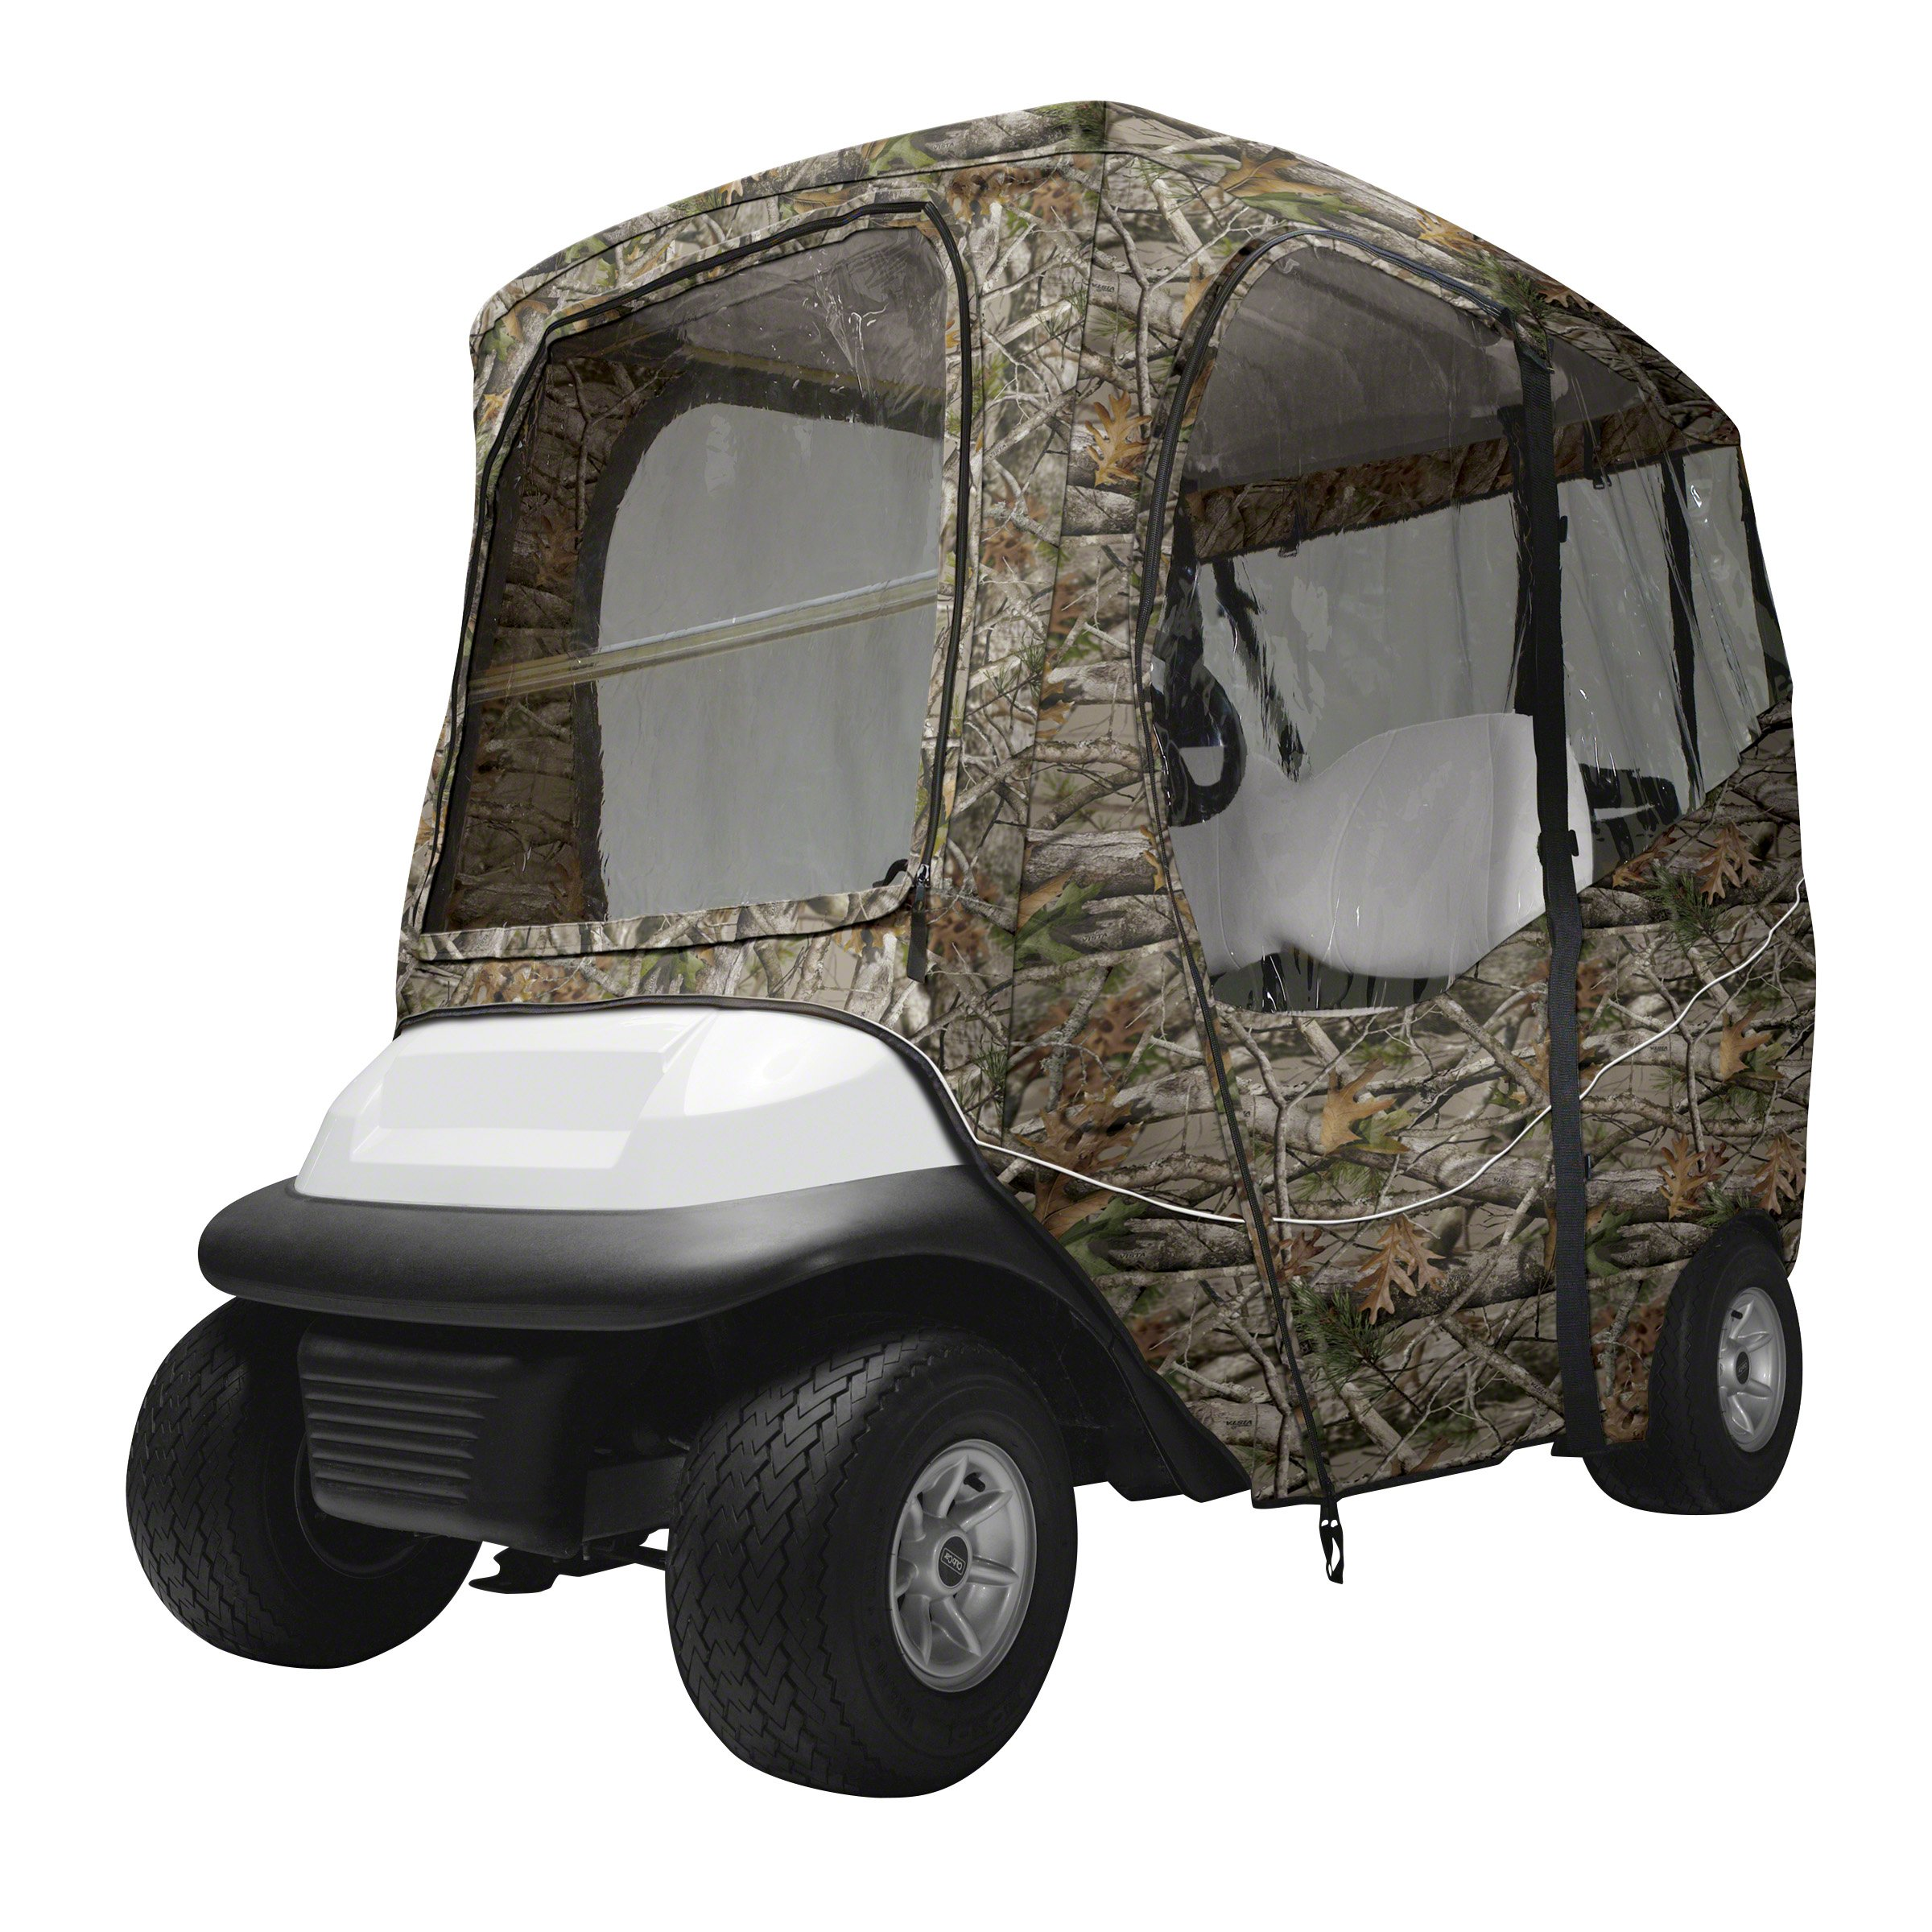 Classic Accessories Fairway Golf Cart Deluxe Enclosure, Camo by Classic Accessories (Image #1)